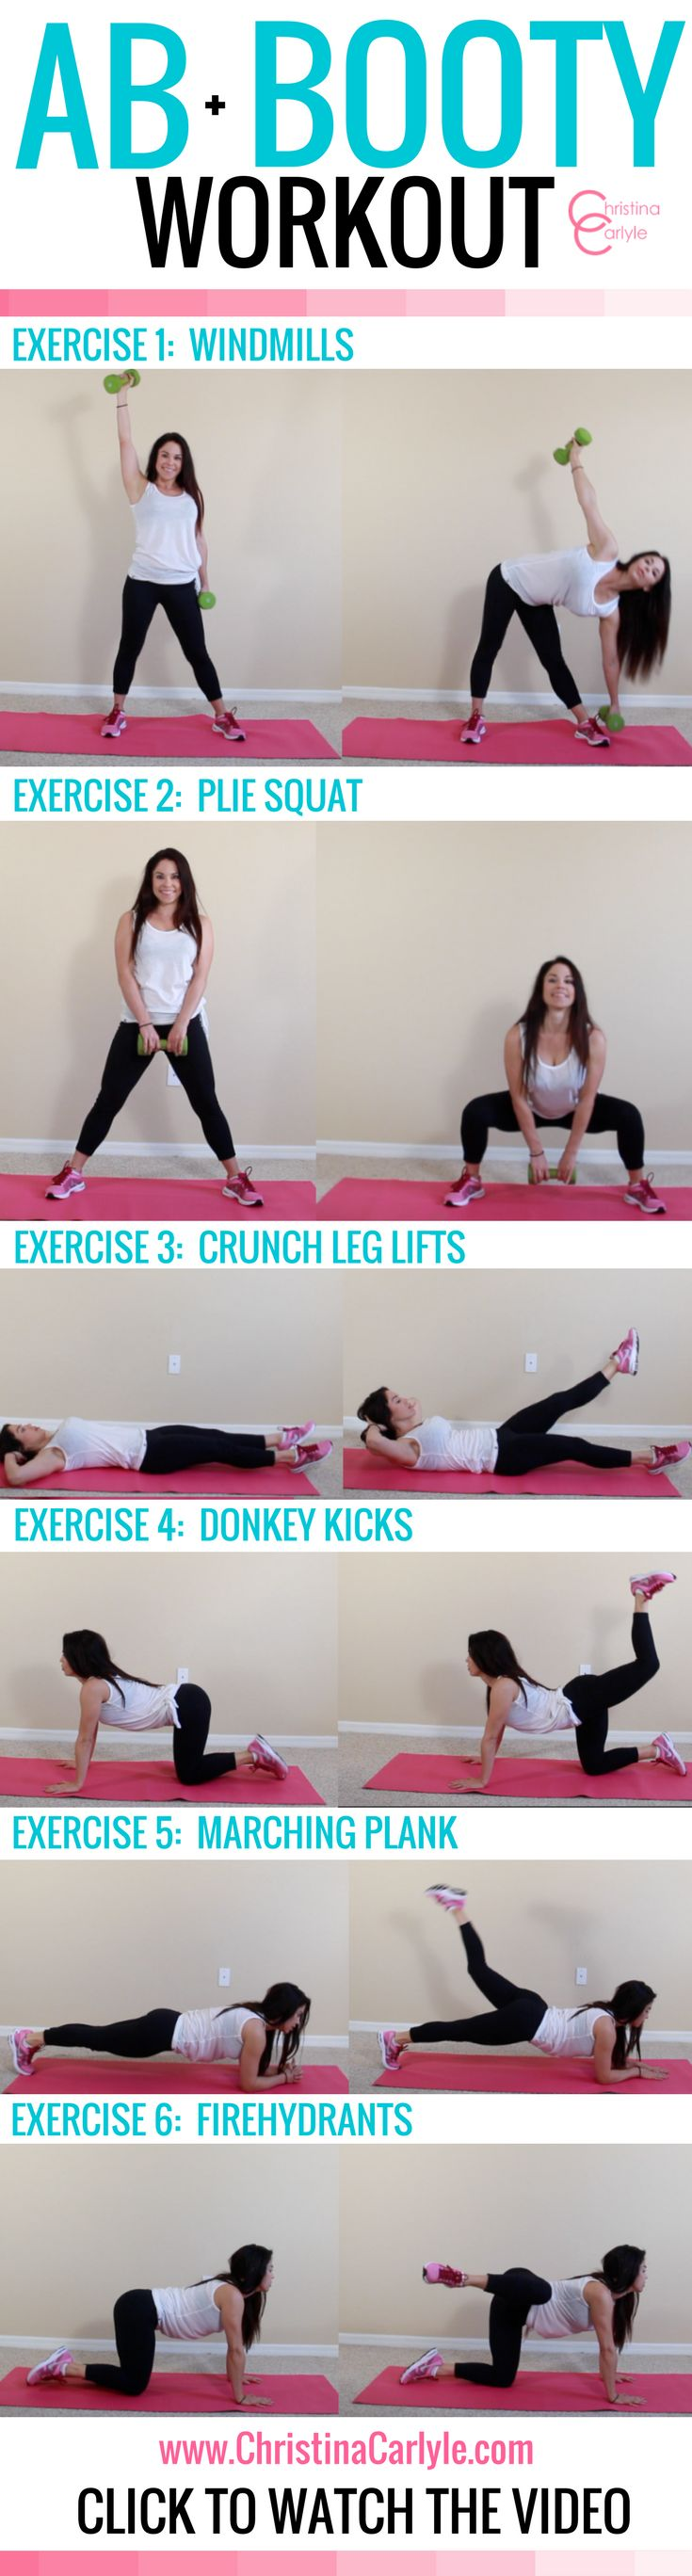 ab + booty workout - Christina Carlyle